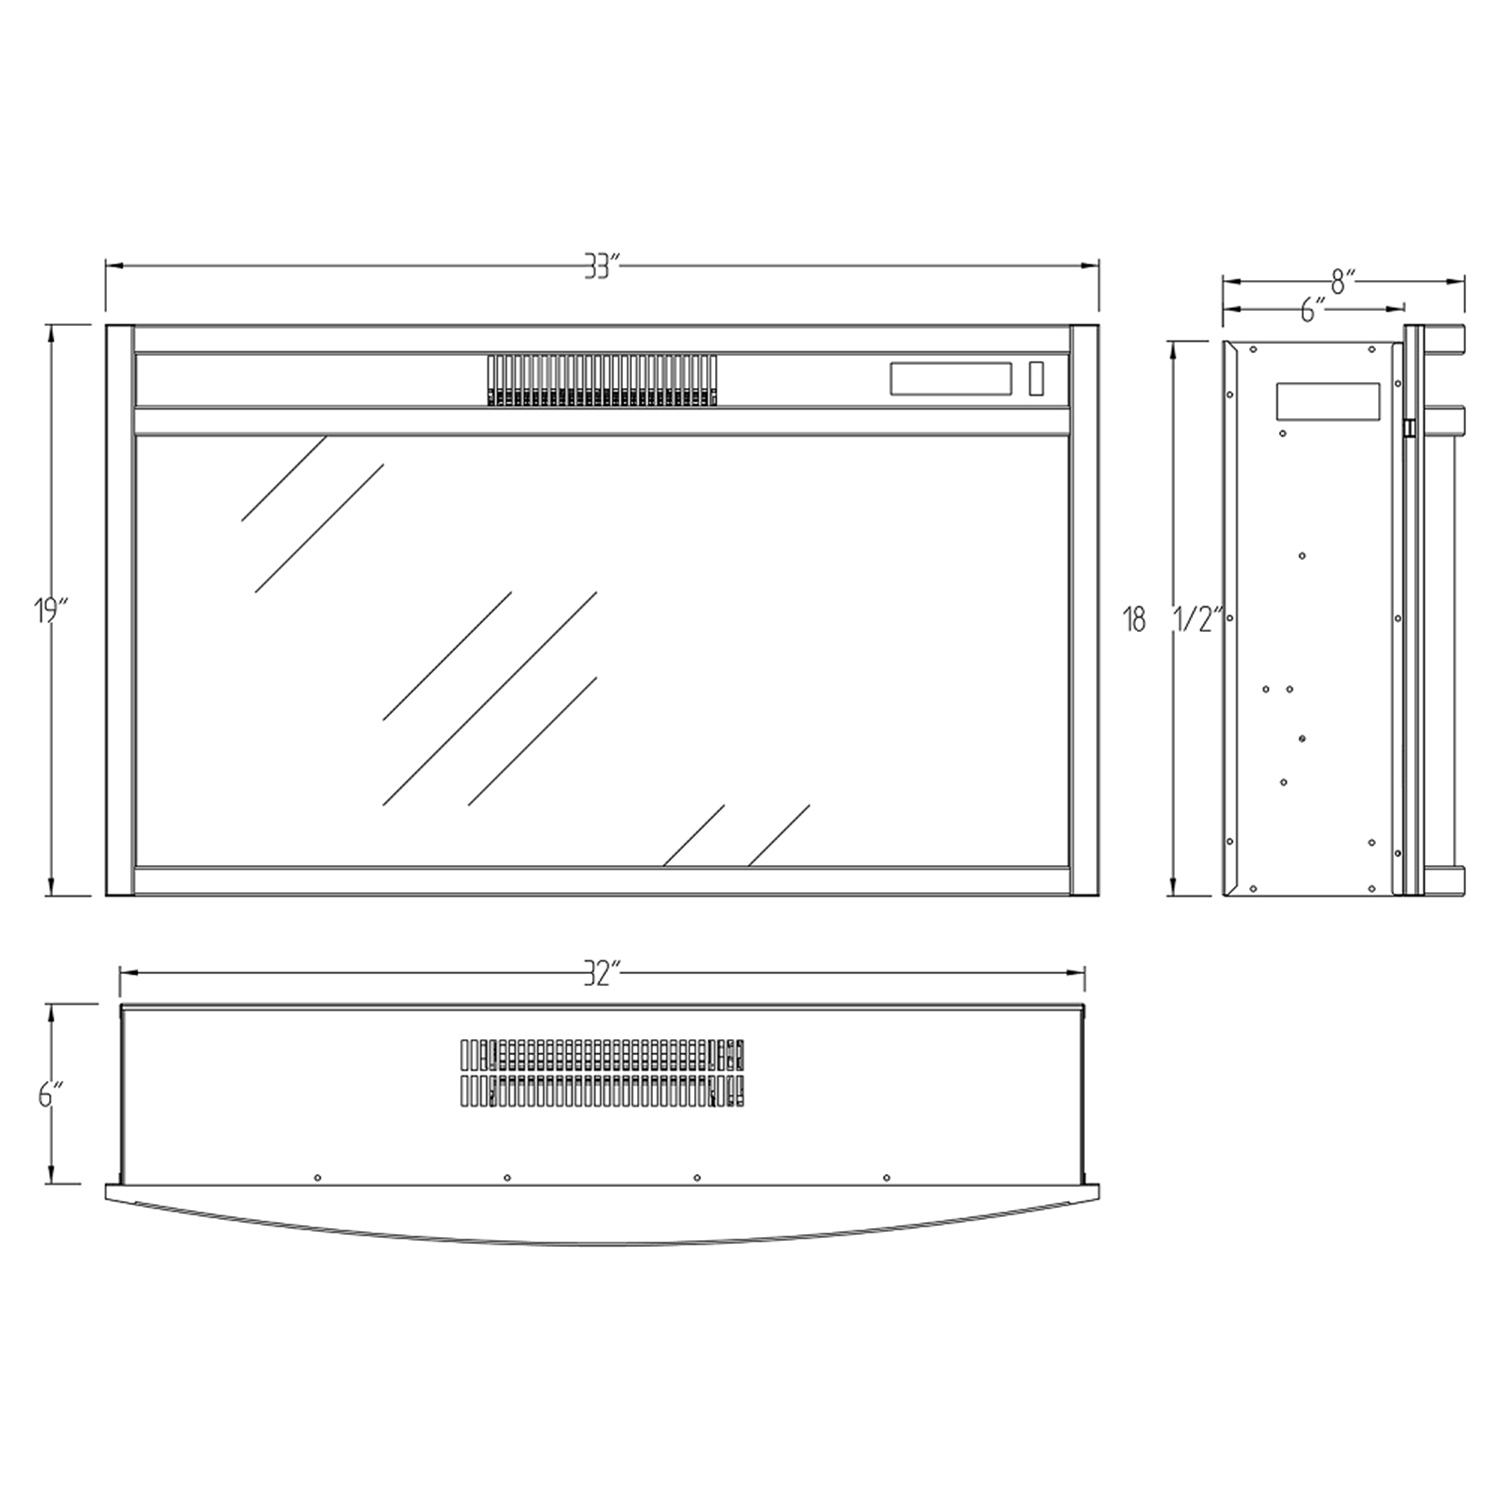 Schematic Electric Fireplace Diagrams Wiring Diagram Insert Illustration Of U2022 Gas